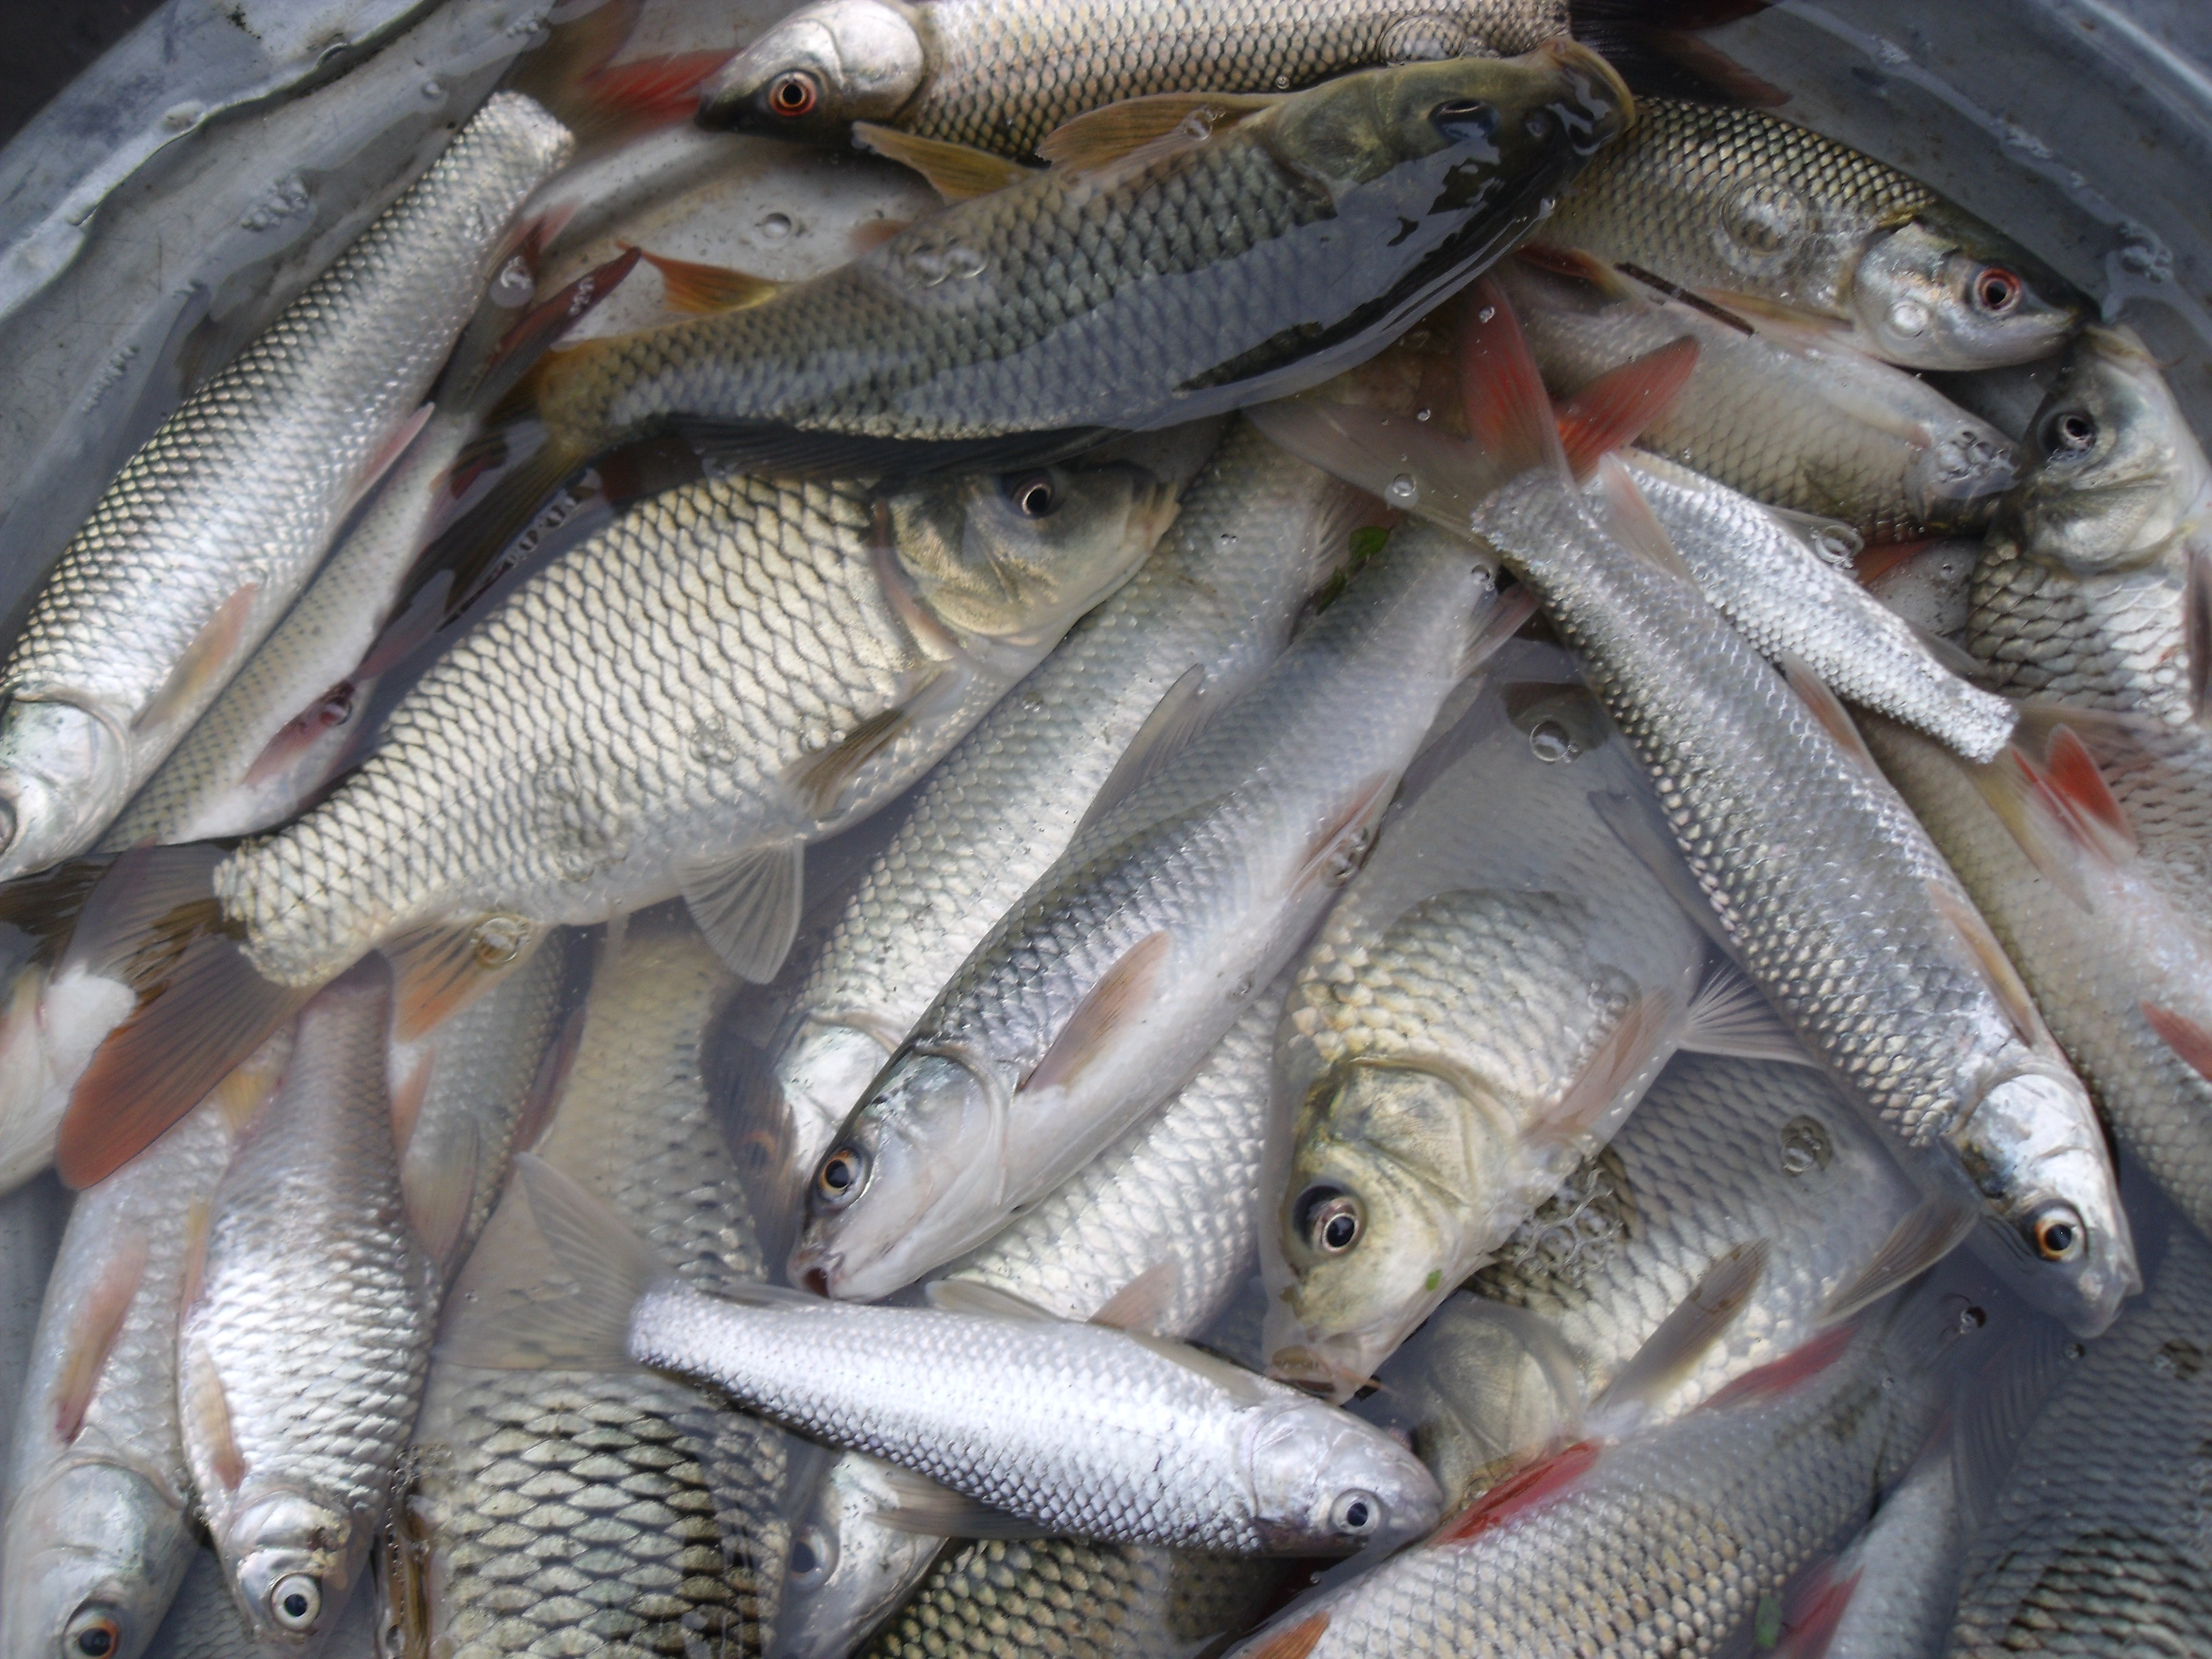 Farmed fish like these carp now make an important contribution to global food security.